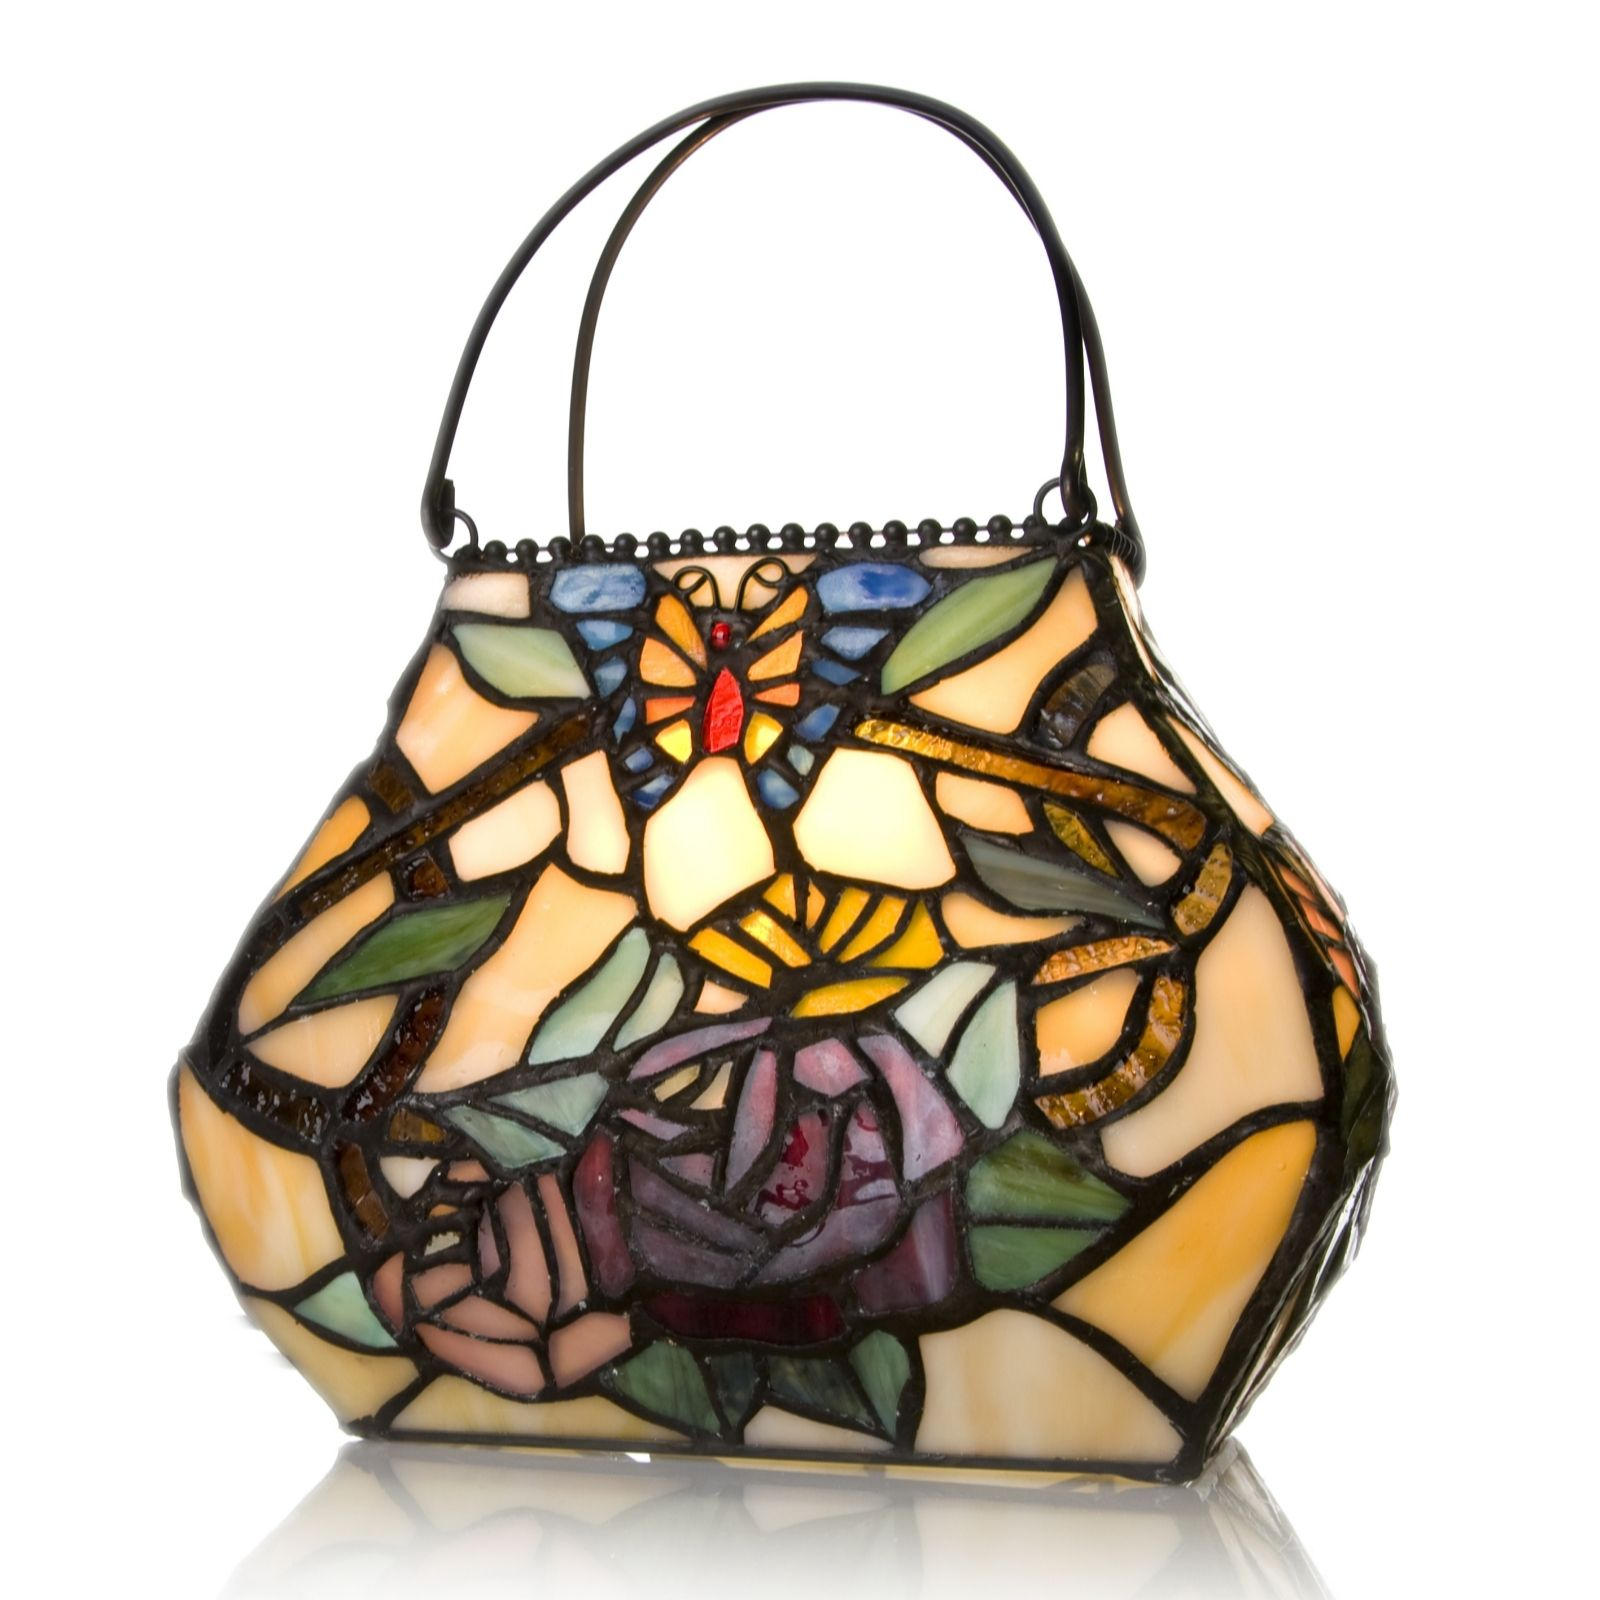 Tiffany Style Handcrafted Sunkissed Rose Handbag Accent Lamp   QVC UK